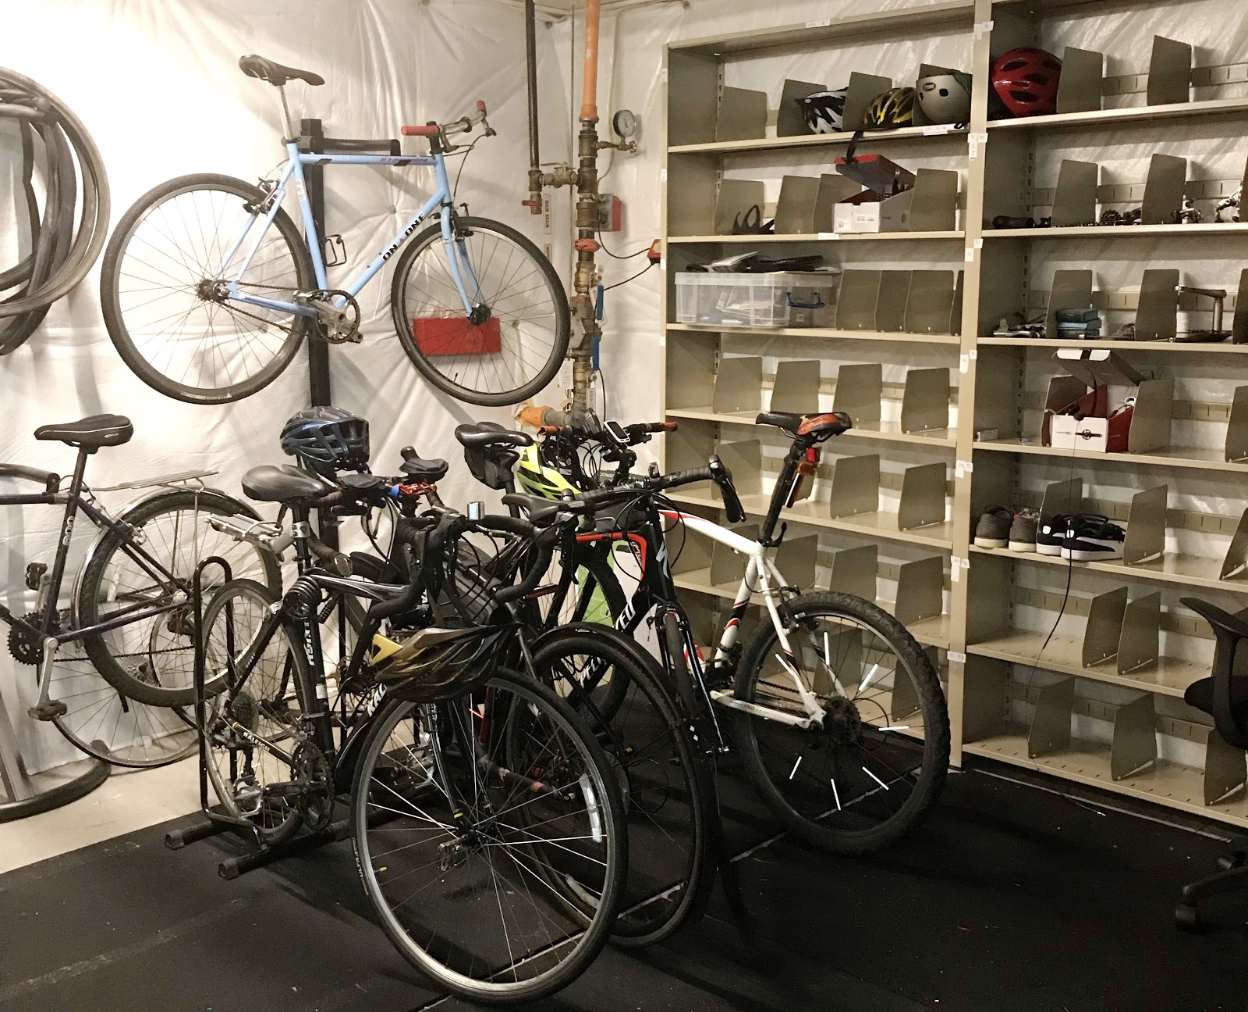 Albemarle-based Commonwealth Computer Research, Inc. transformed one of its storage rooms into a bike locker. (Photo: Amanda Poncy)